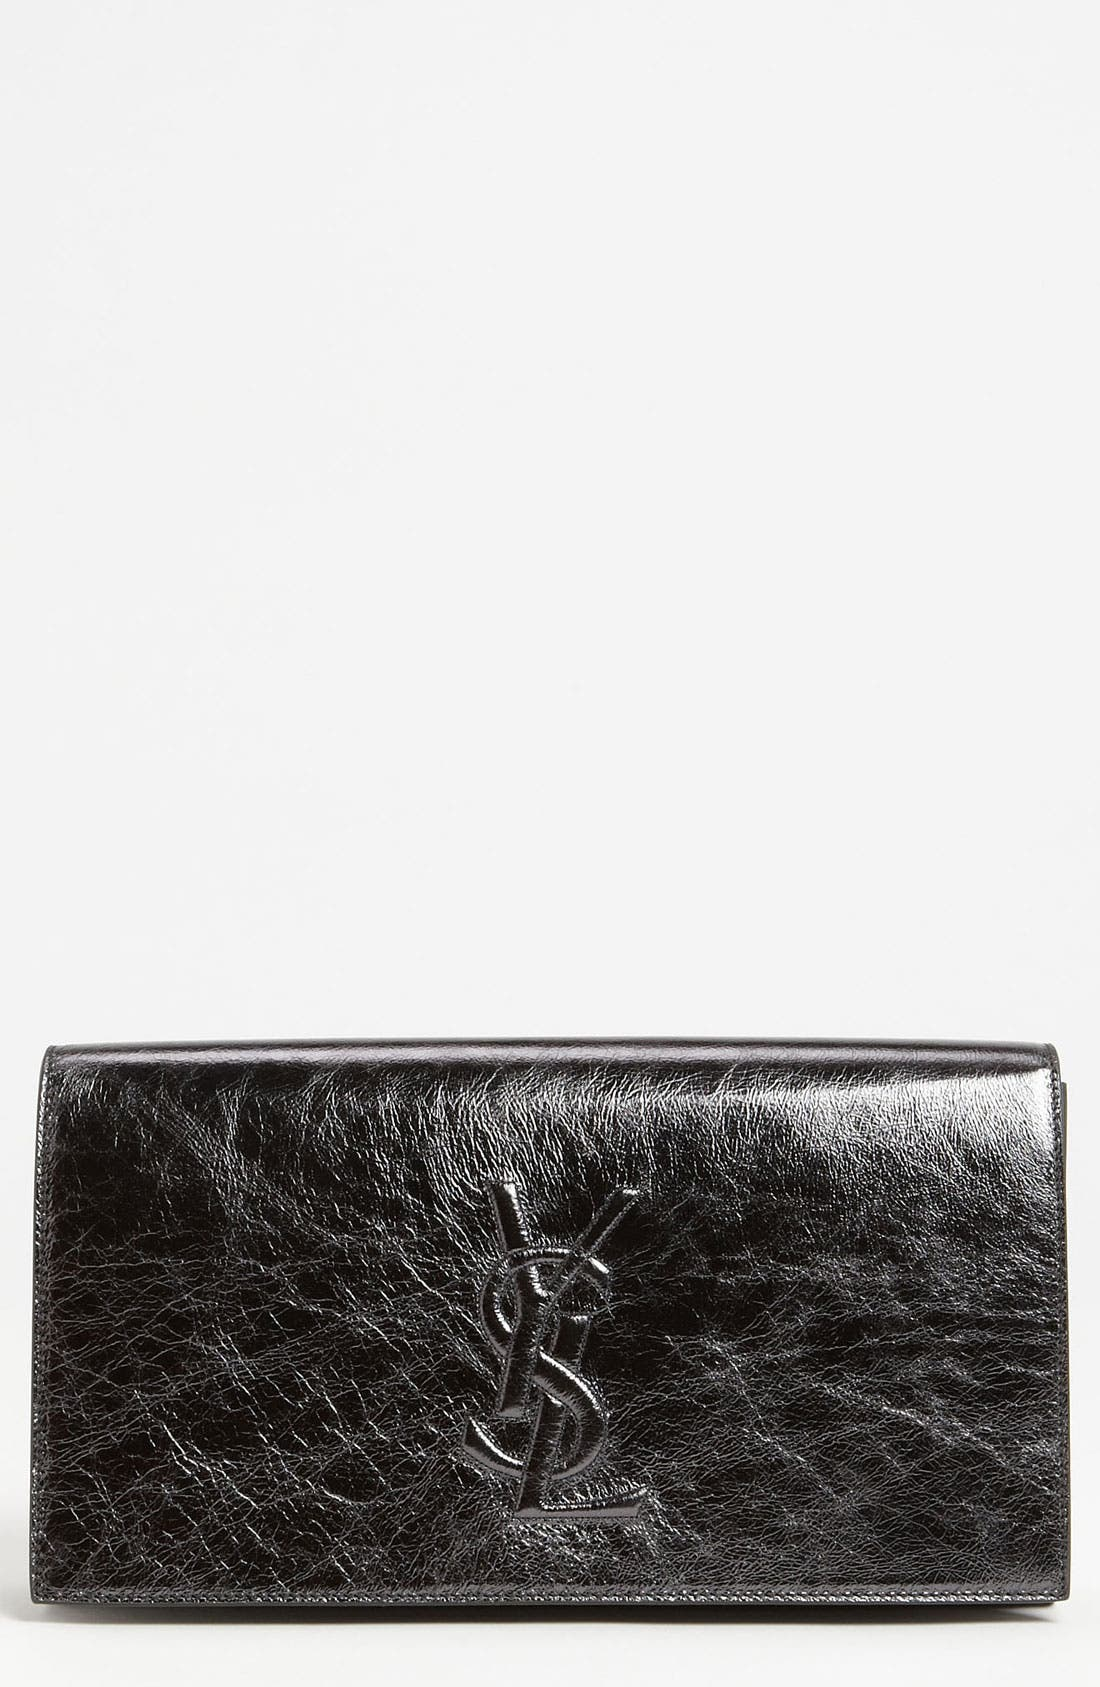 Main Image - Saint Laurent 'Belle de Jour' Clutch